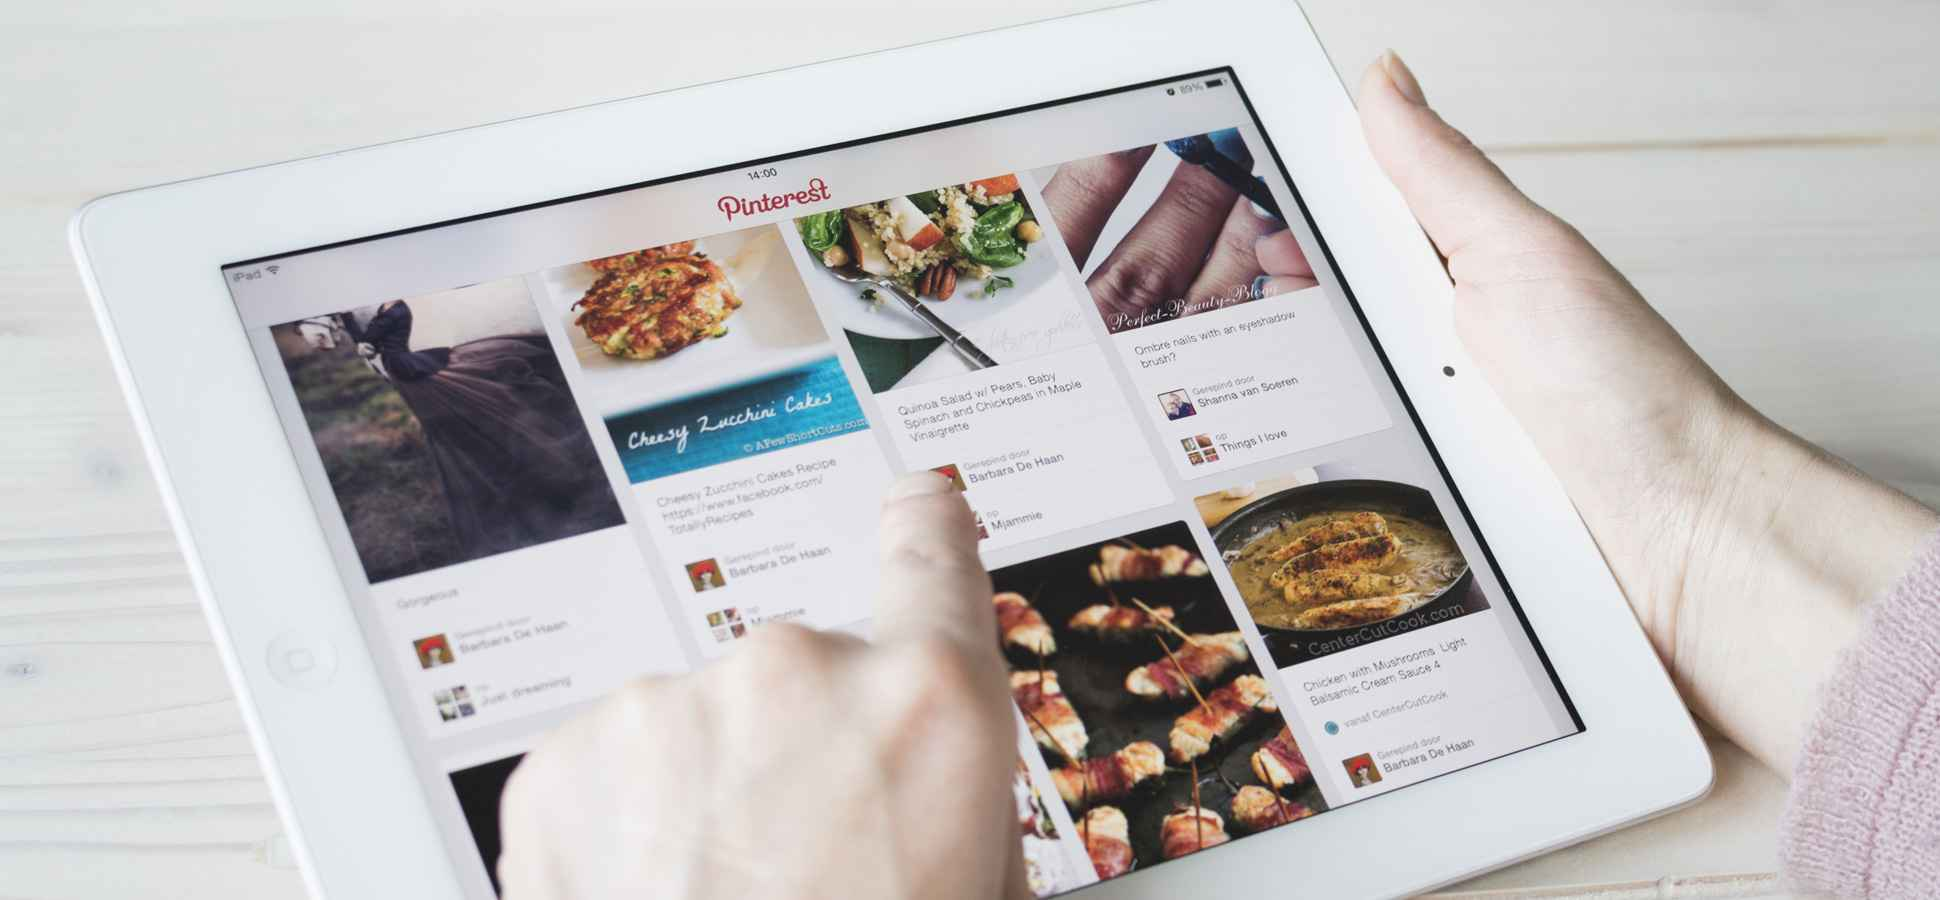 Pinterest's Monetization Plan: Charge Advertisers Up to $2 Million